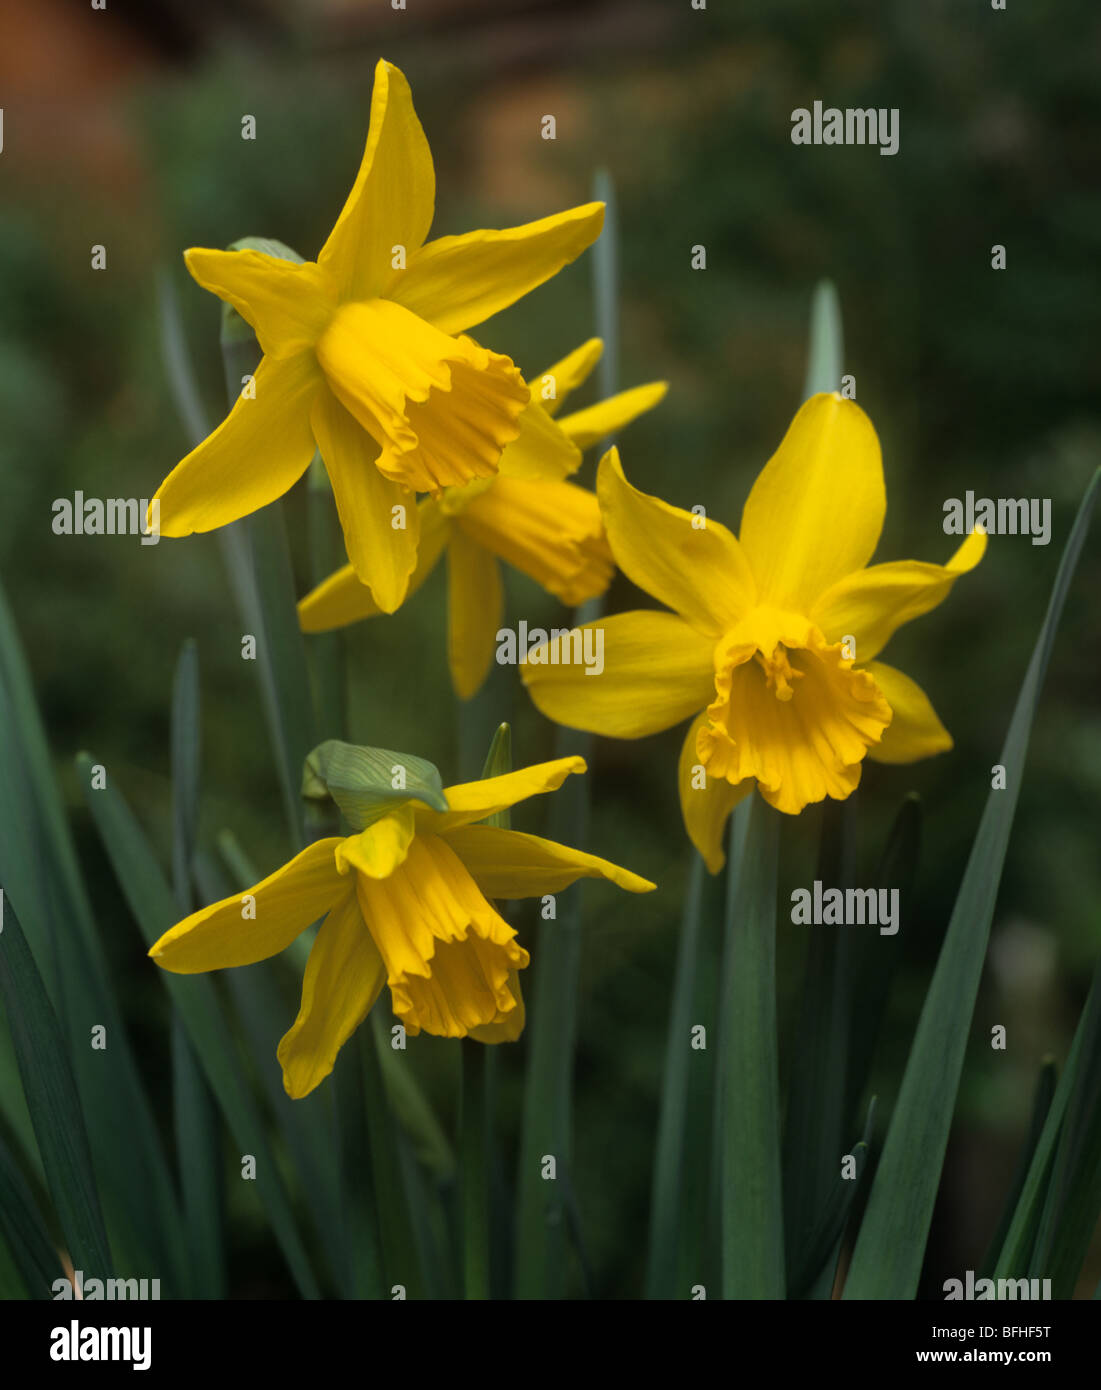 Flowers of Narcissus 'February Gold' - Stock Image